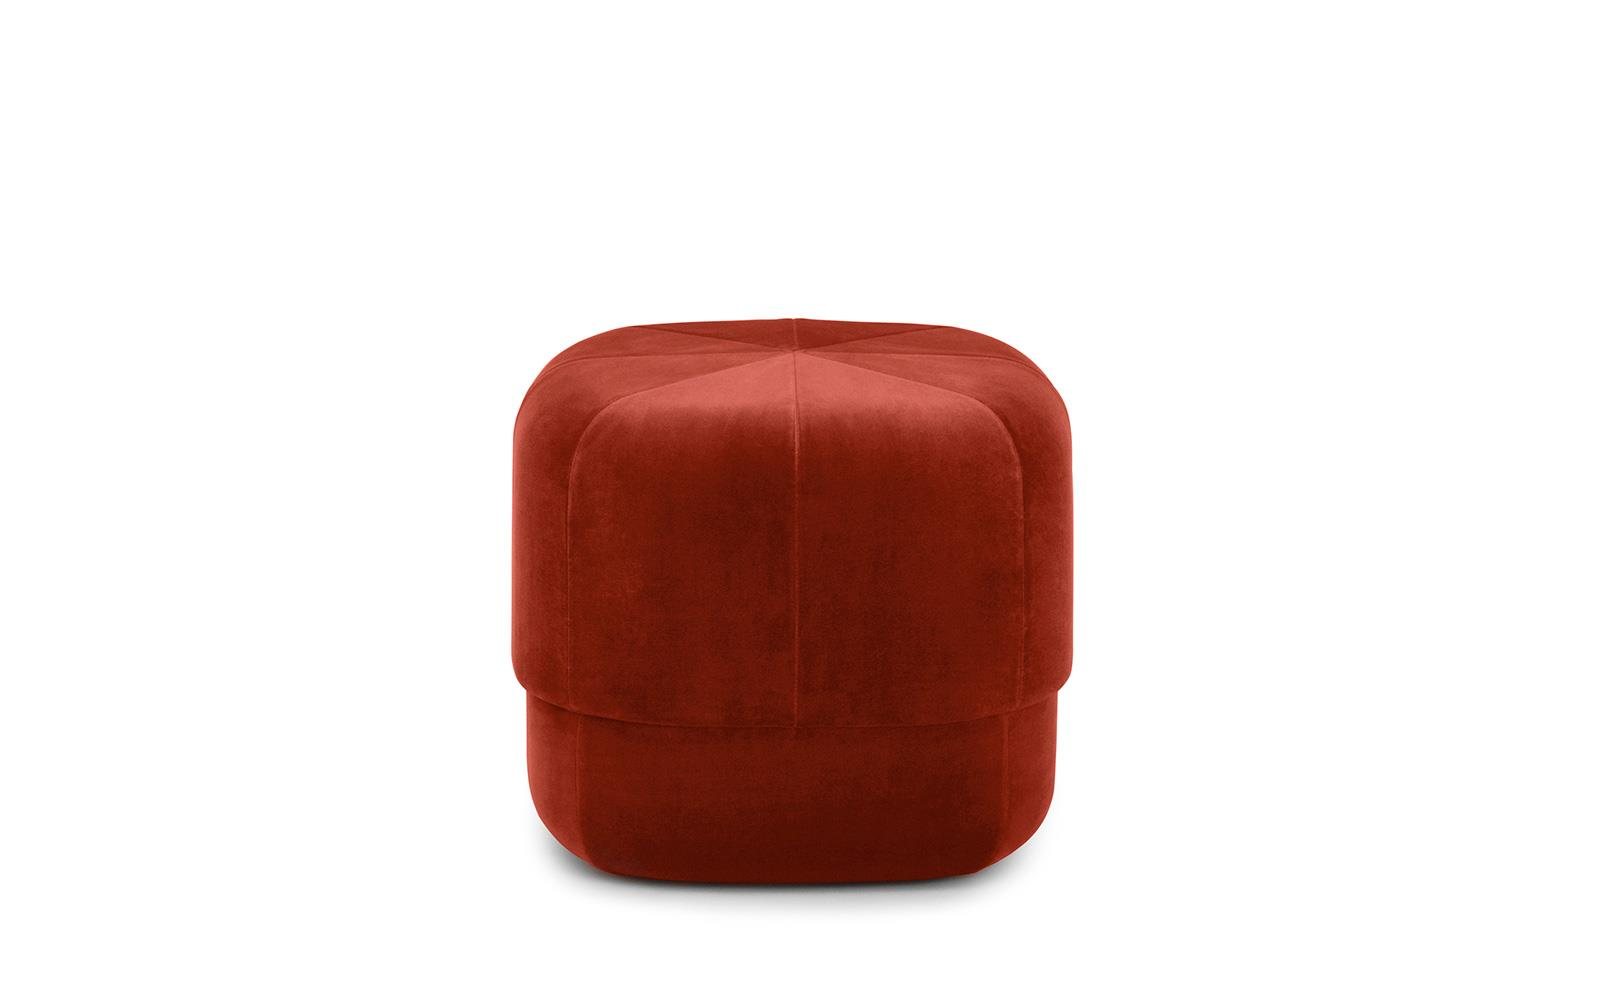 Moroccan Leather Pouf Design Sit Down Pinterest Leather Circus Pouf Small Rust